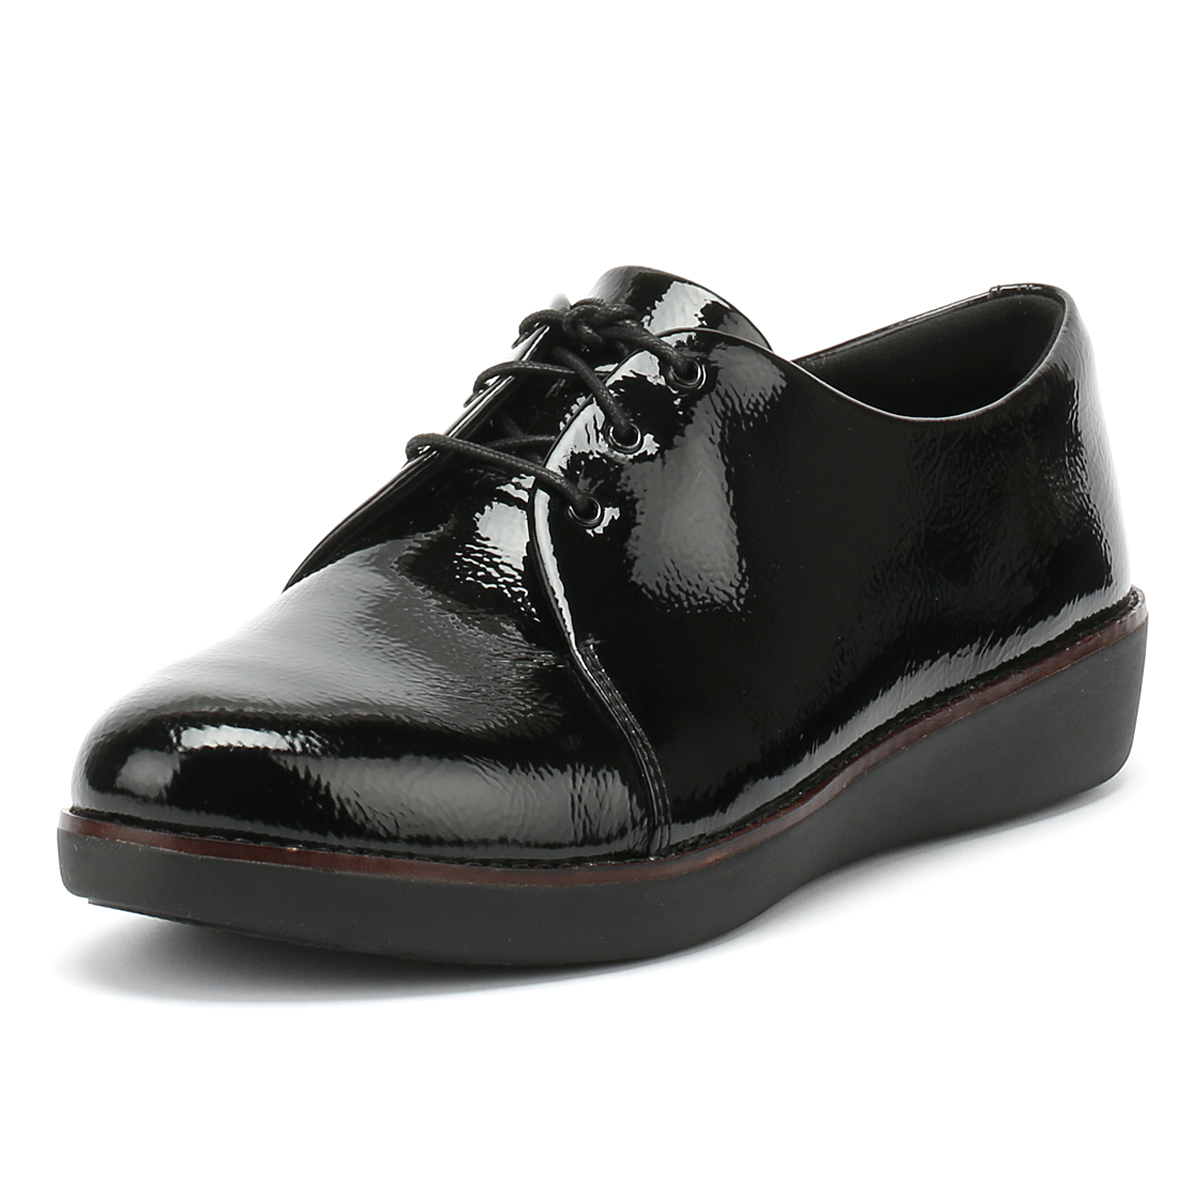 14cbb3ebcc82 Details about FitFlop Womens Black Derby Crinkle Patent Shoes Ladies Lace  Up Casual